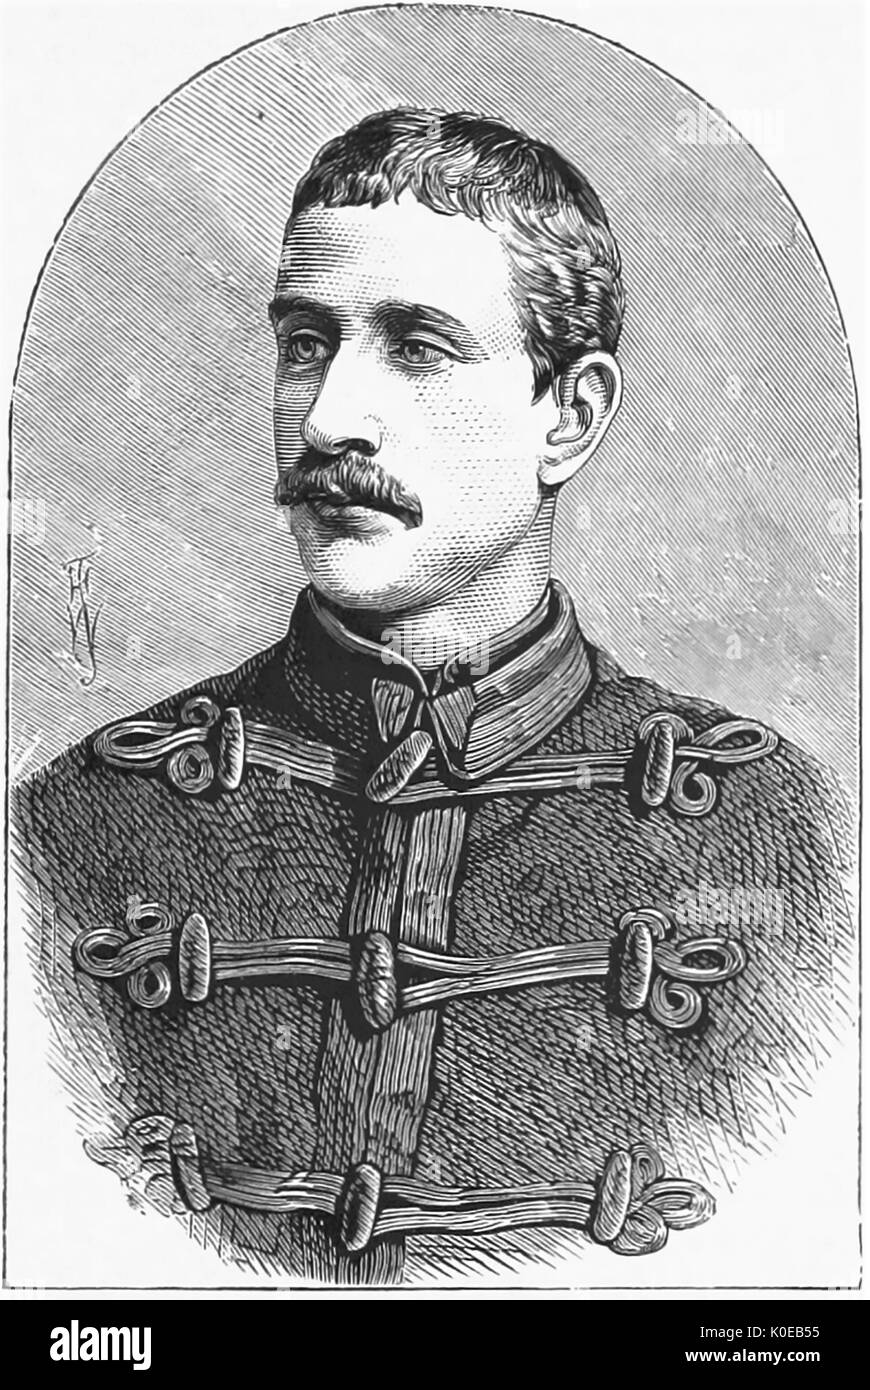 NAPOLEON, PRINCE IMPERIAL (1856-1879) son of Napoleon III killed in the Anglo-Zulu War of 1879. Stock Photo